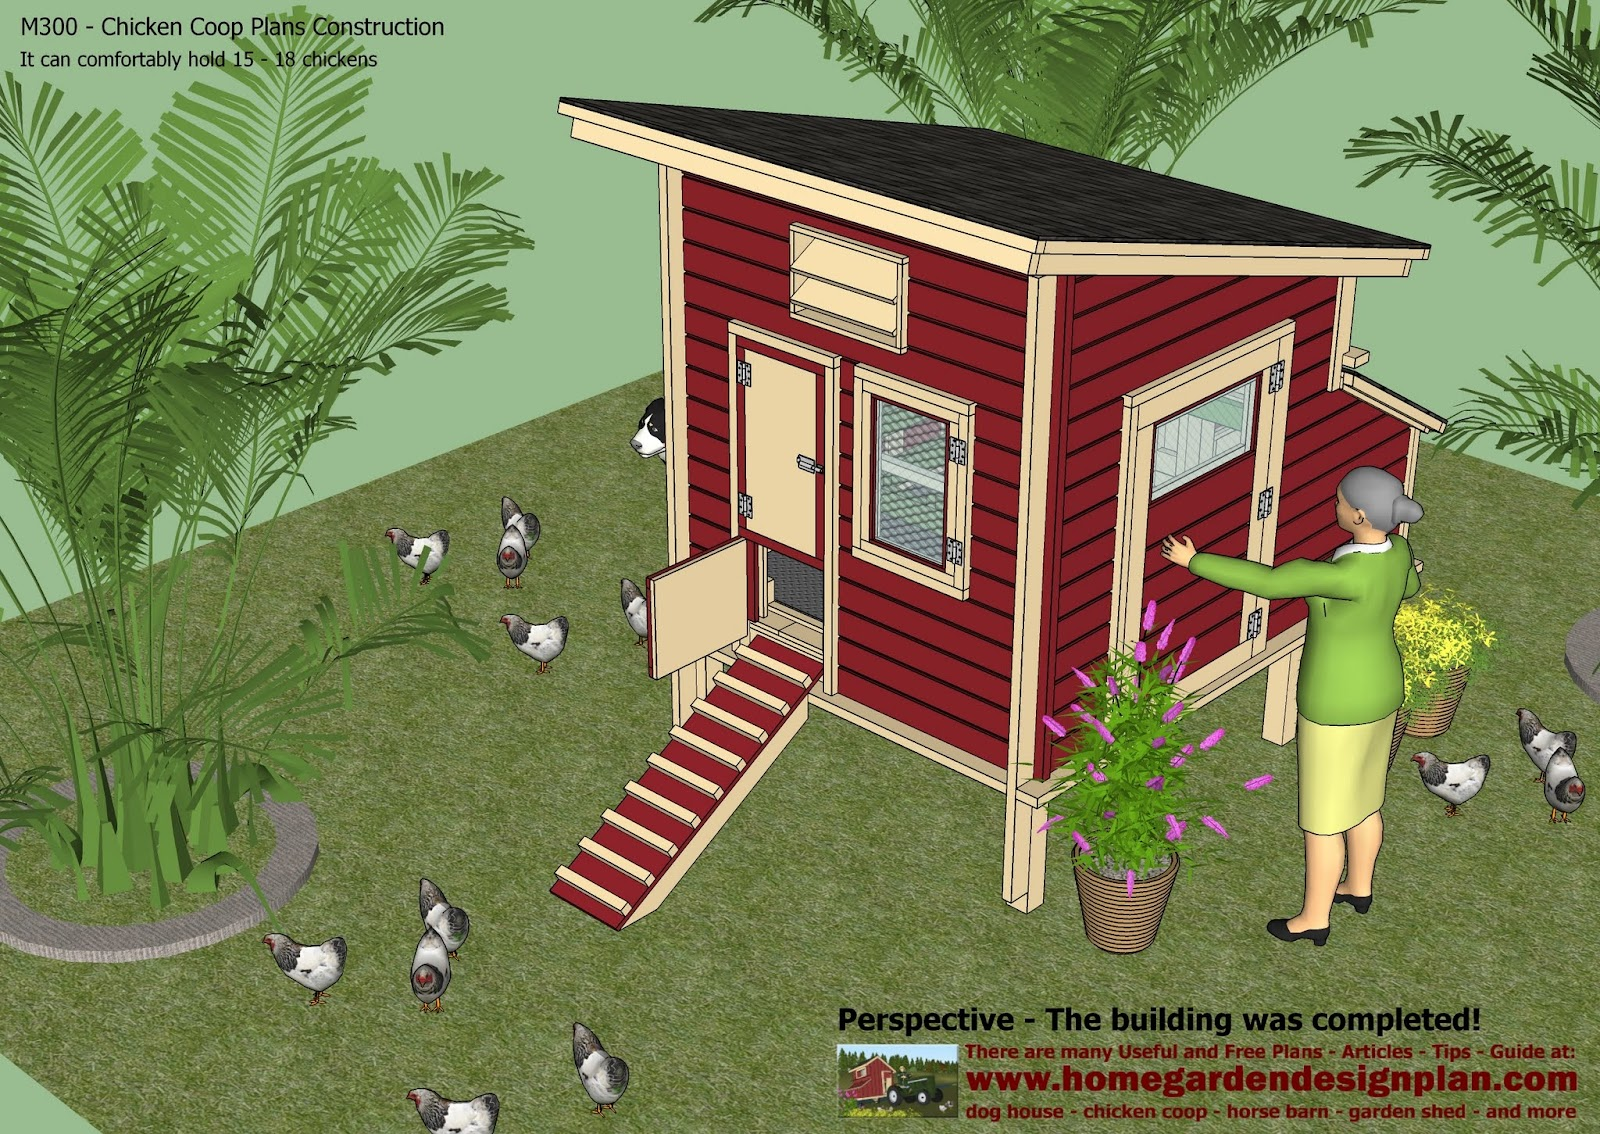 Home Garden Plans: M300   Chicken Coop Plans   Chicken Coop Design   .